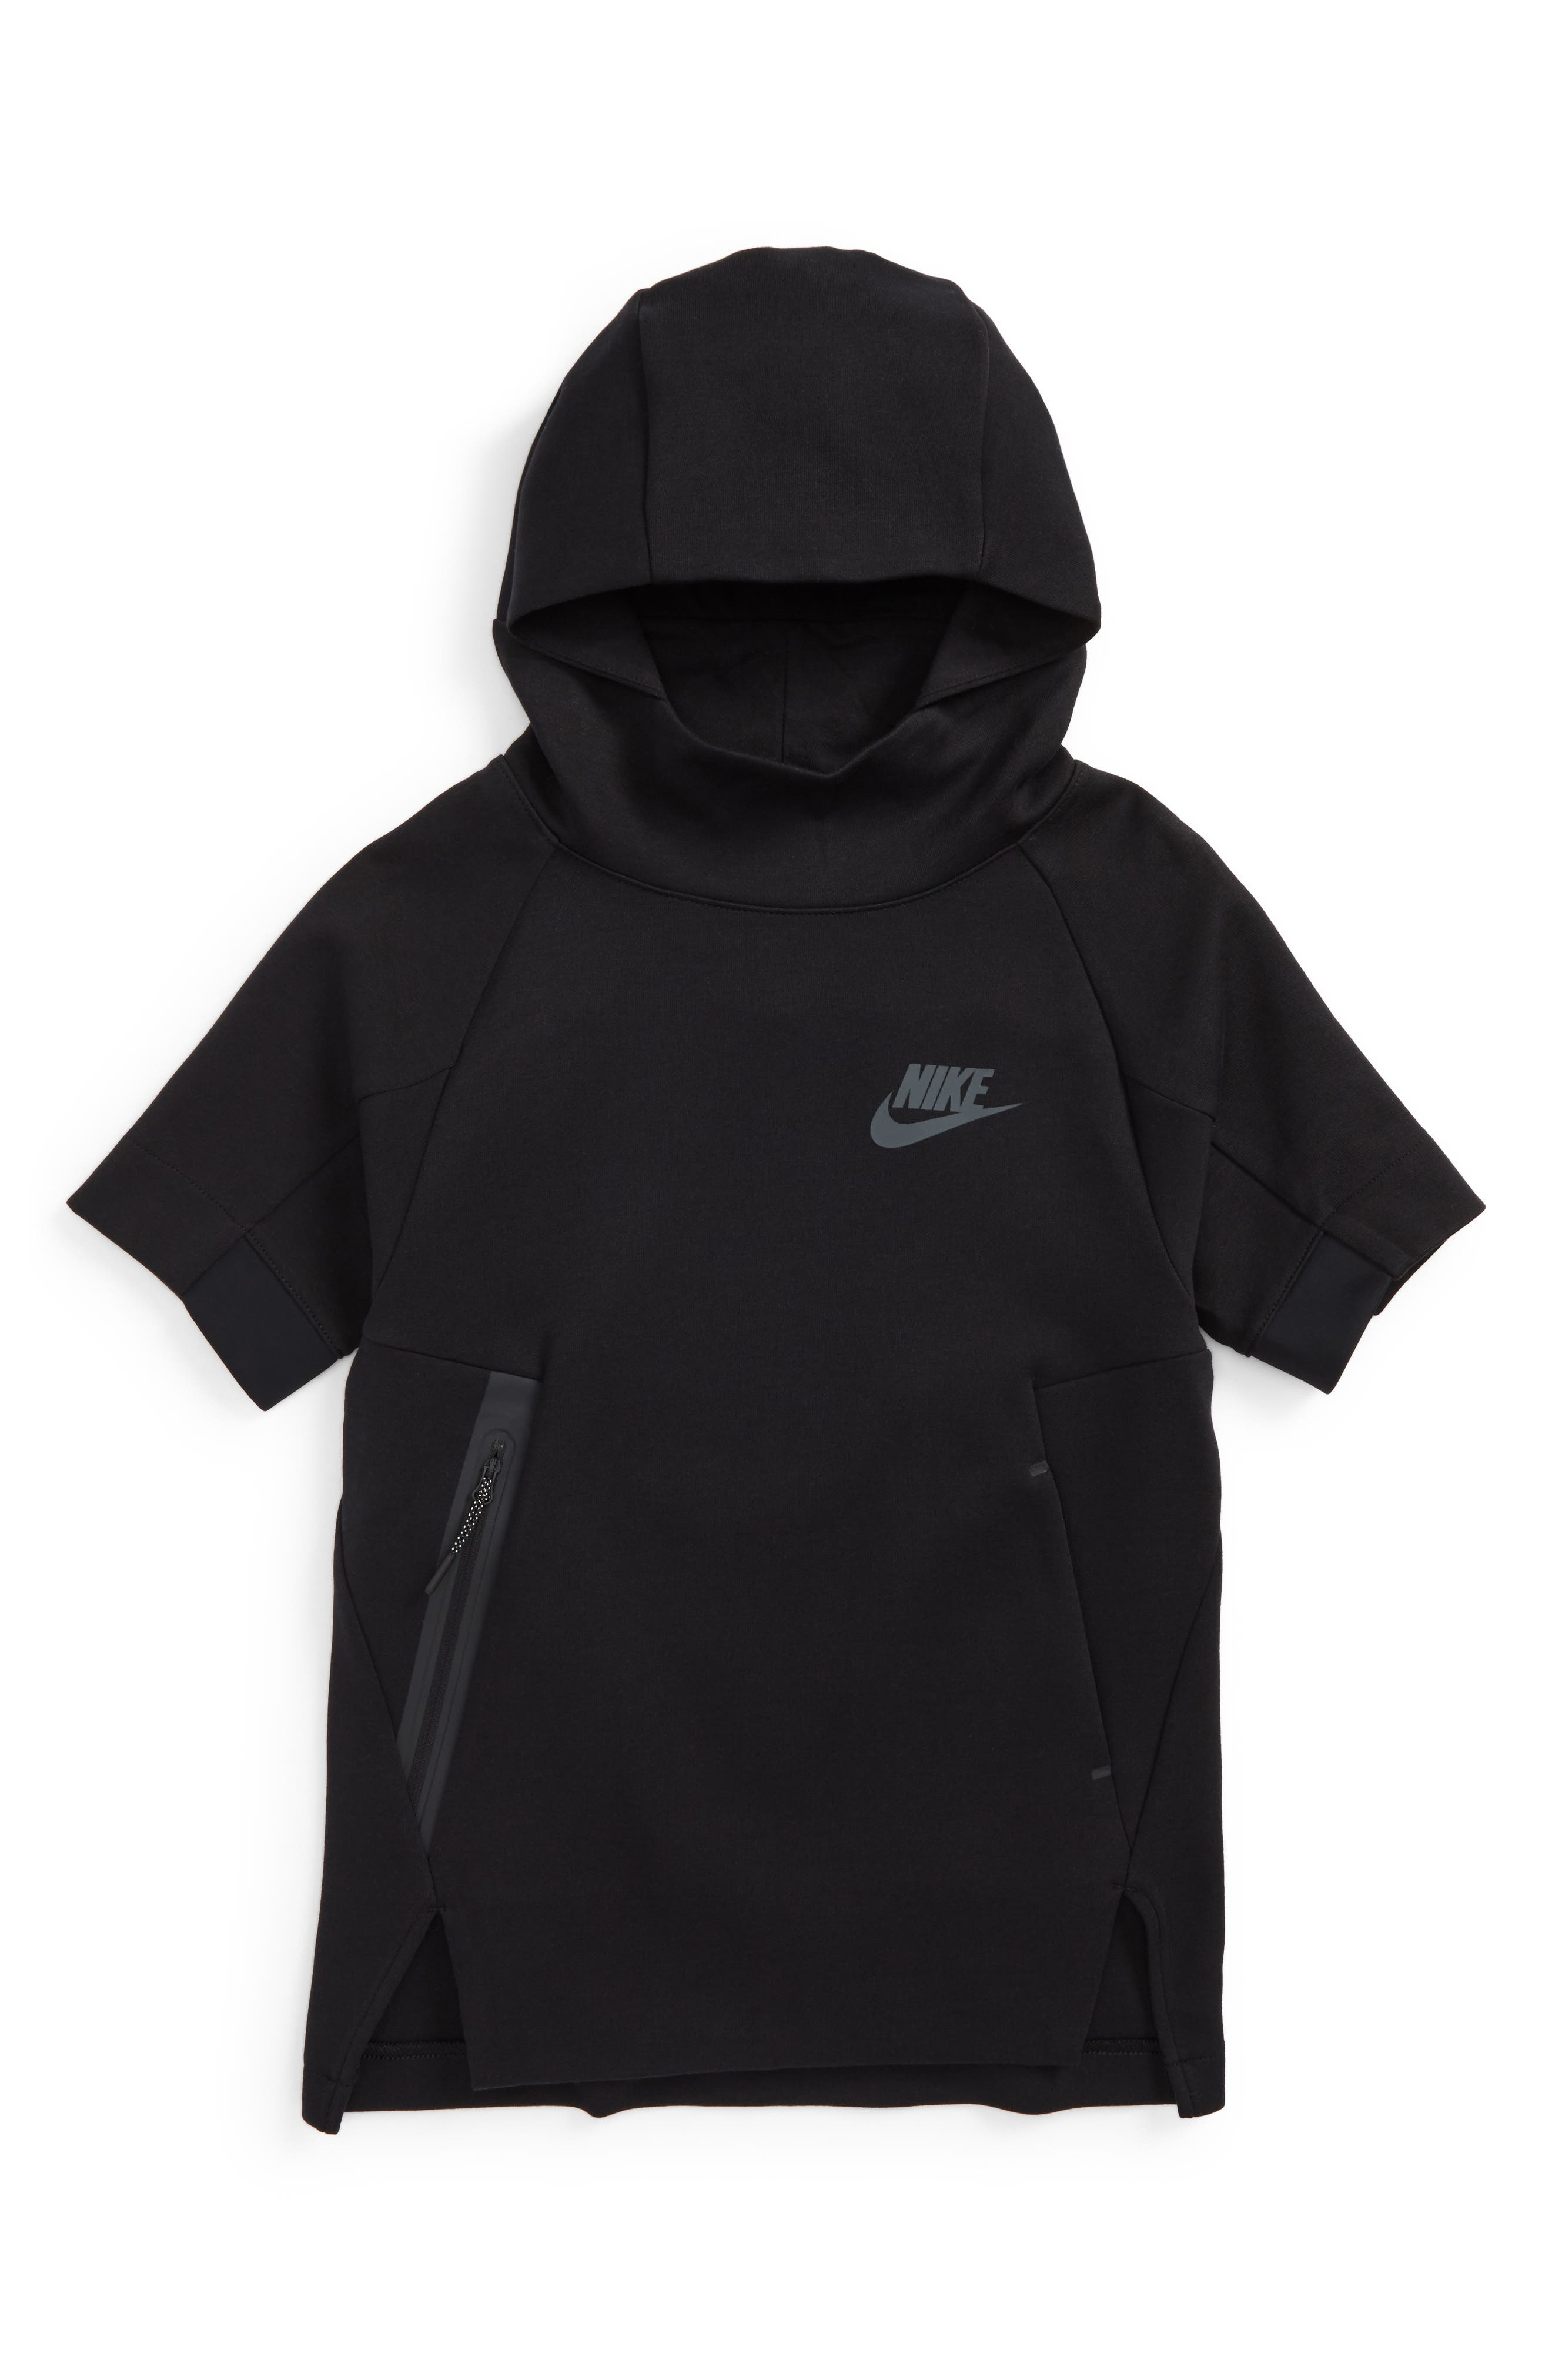 Main Image - Nike Sportswear Tech Fleece Short Sleeve Hoodie (Little Boys & Big Boys)